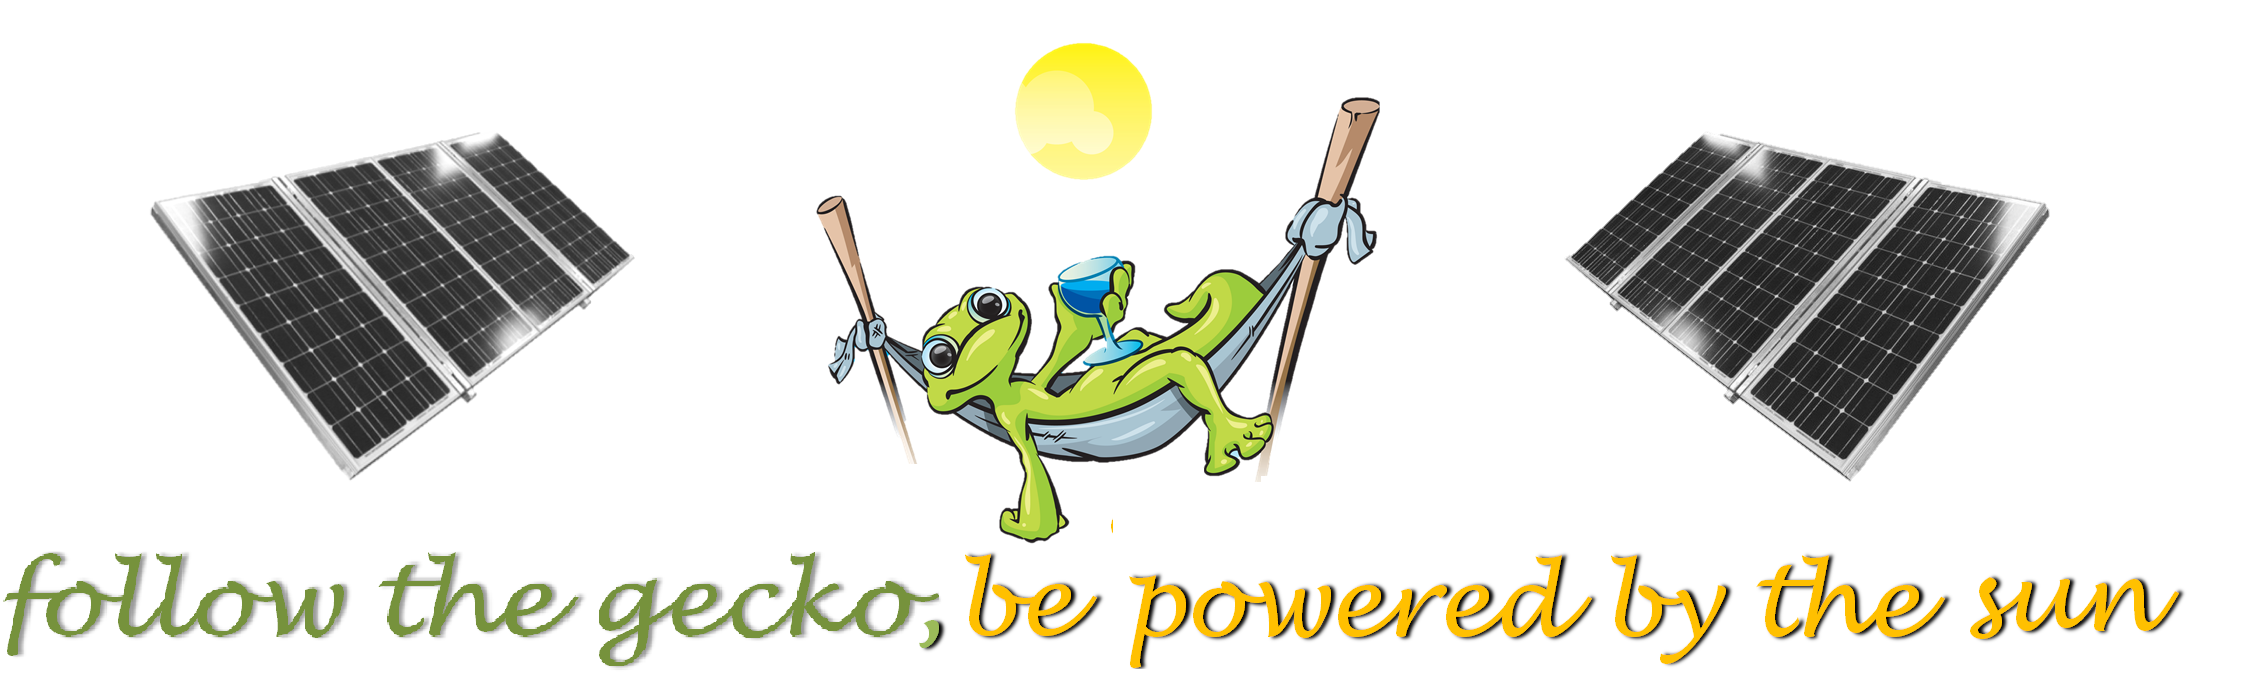 Interested about self-consumption? Follow The Gecko!